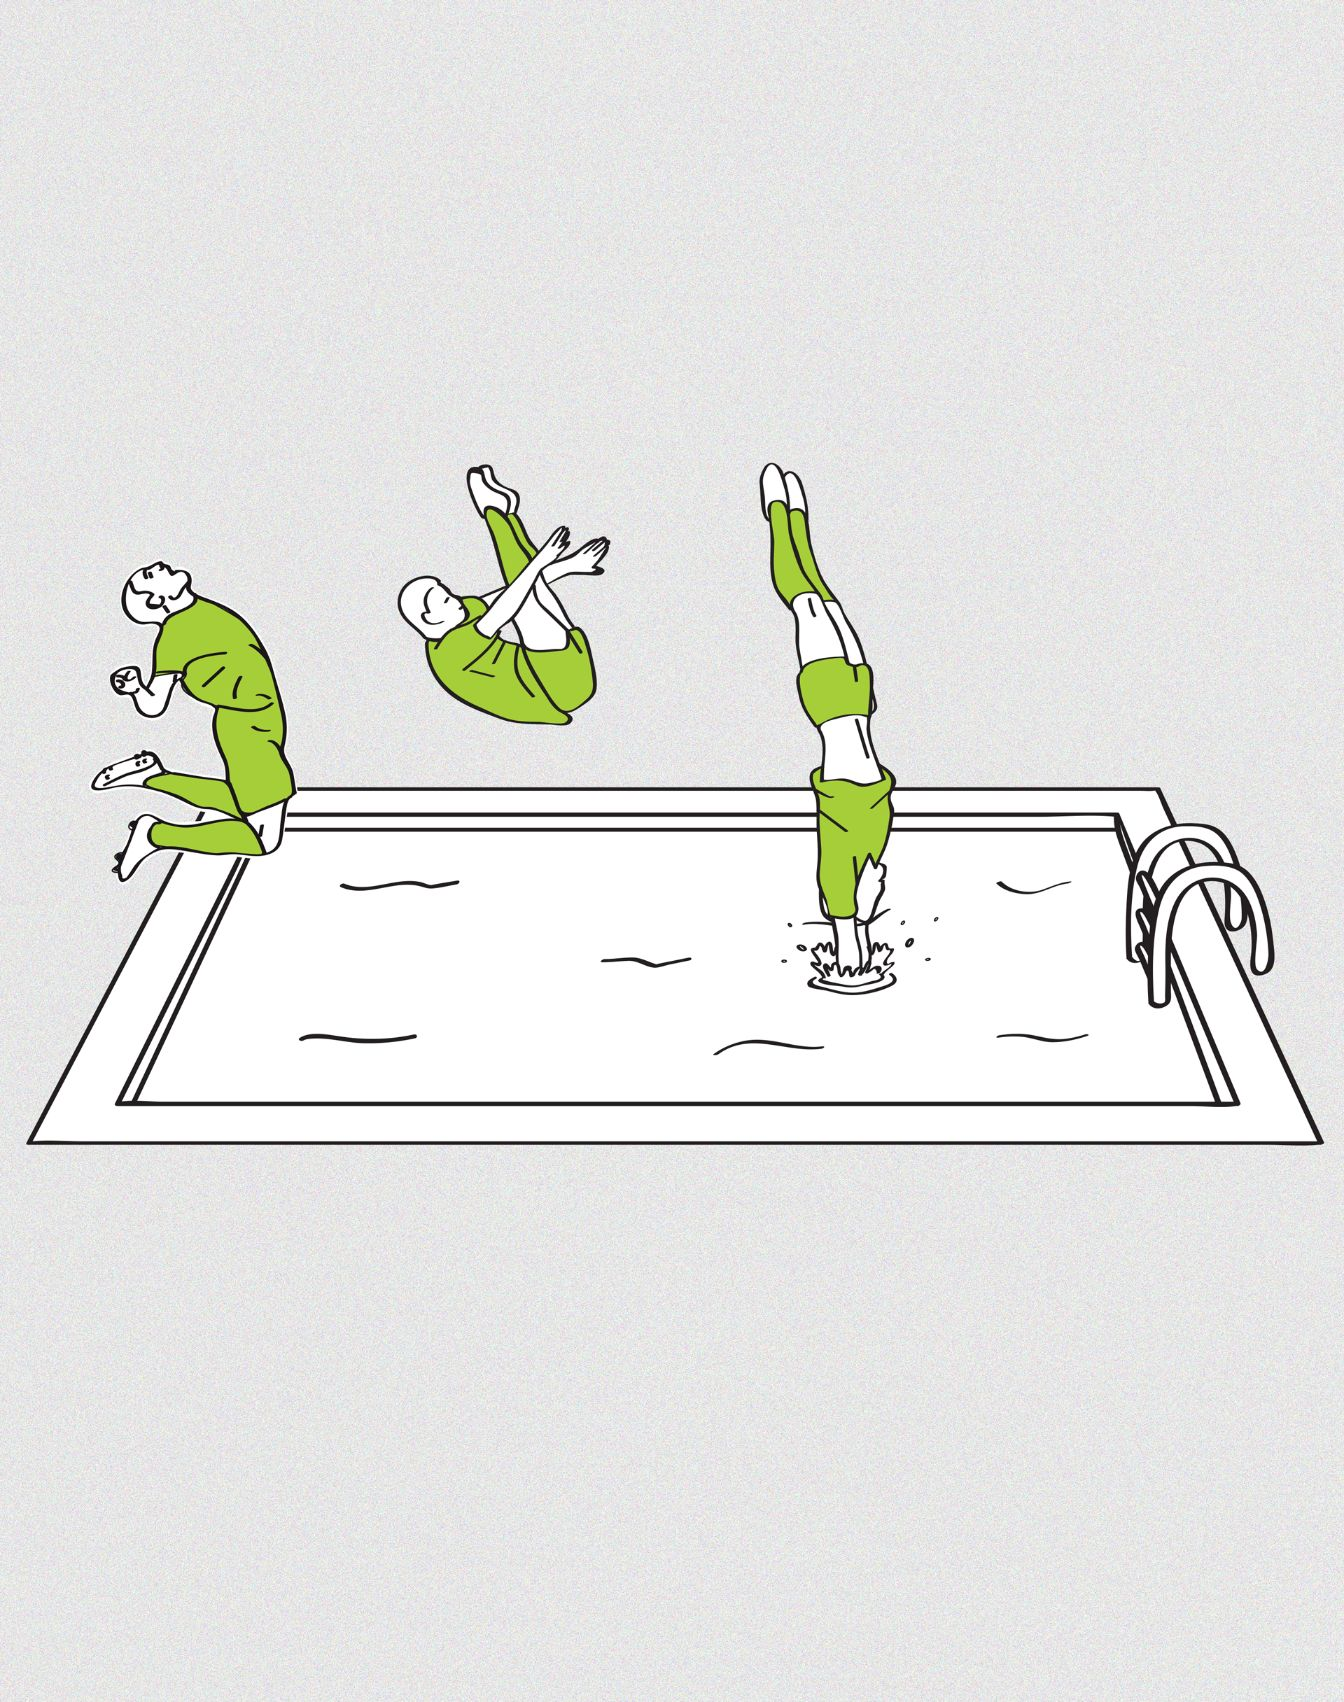 DRAWING-FOOTBALL-DIVING-TWITTER-2